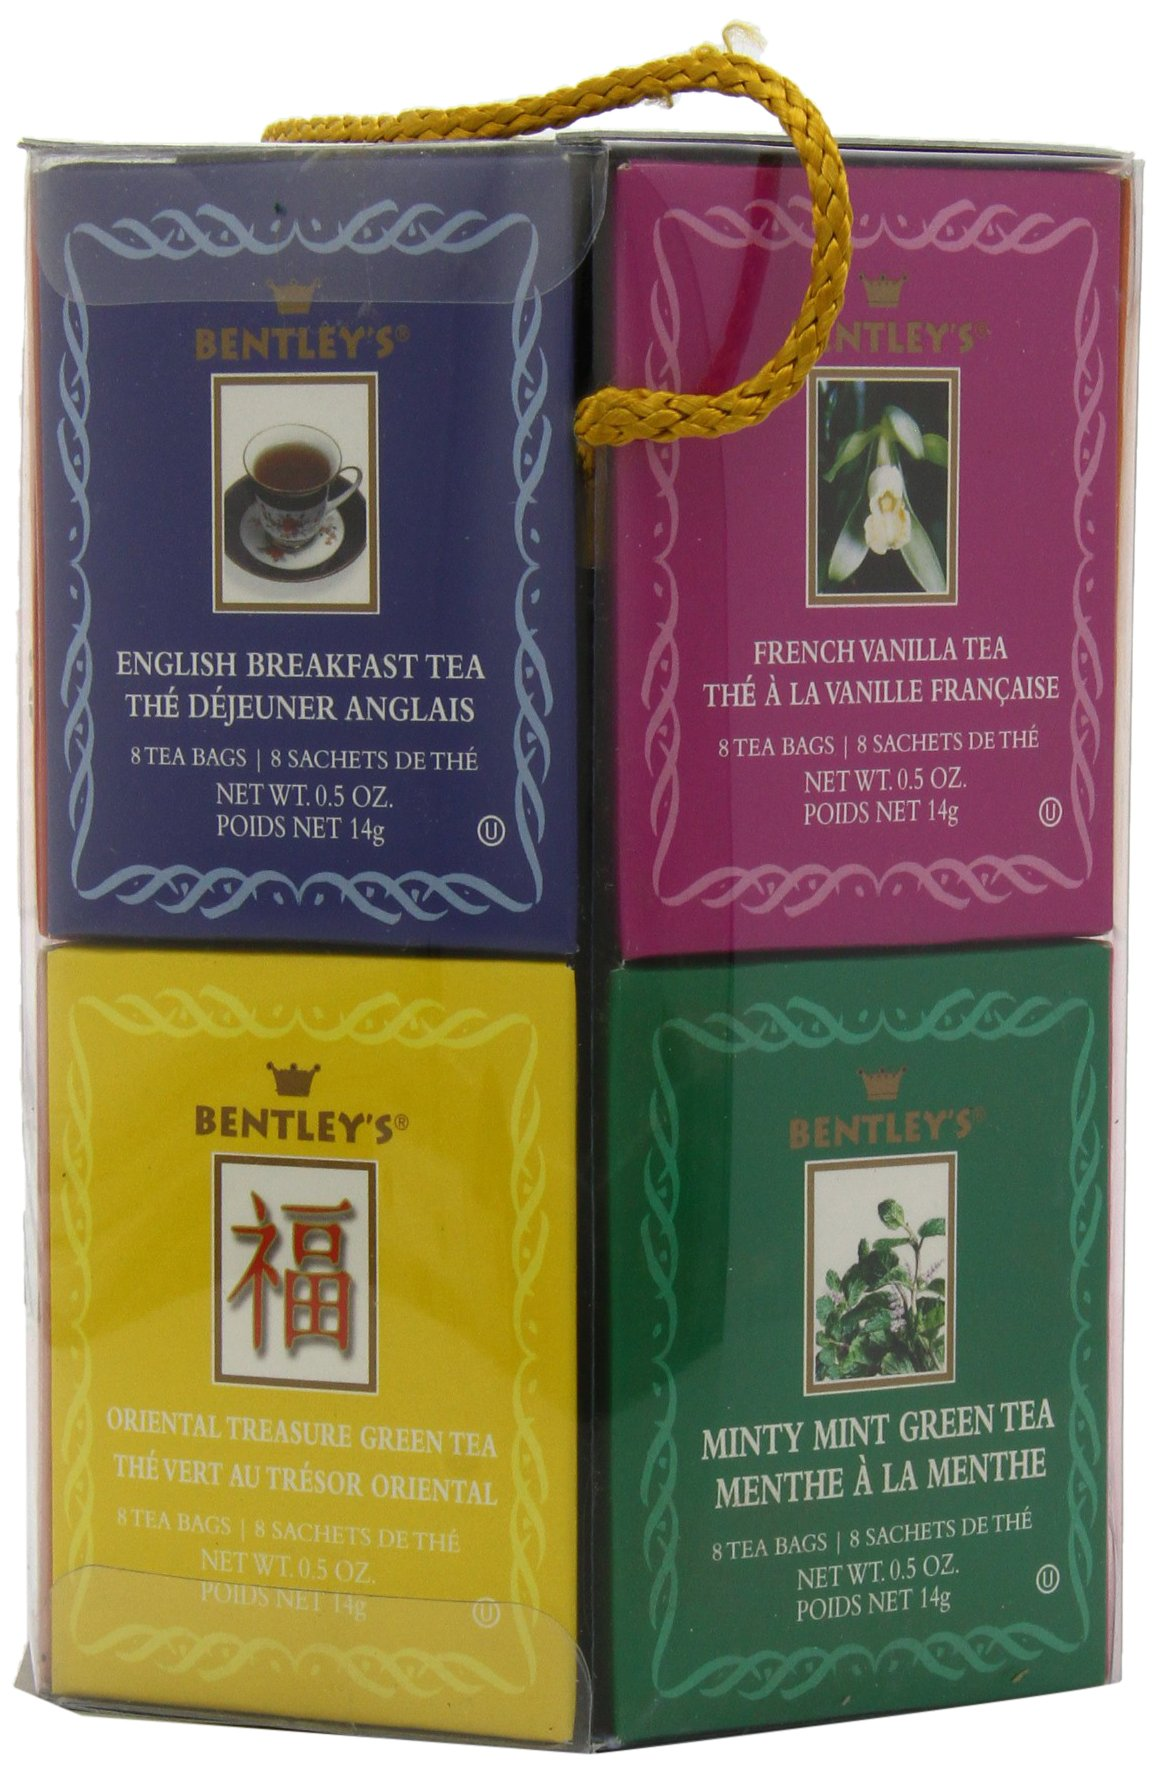 Bentley's Royal Classic Collection Assorted Flavor Gift Pack, 96 Tea Bags (Pack of 2), Includes 8 Bags Each of a Variety of Black and Green Tea Flavors by Bentley's (Image #5)